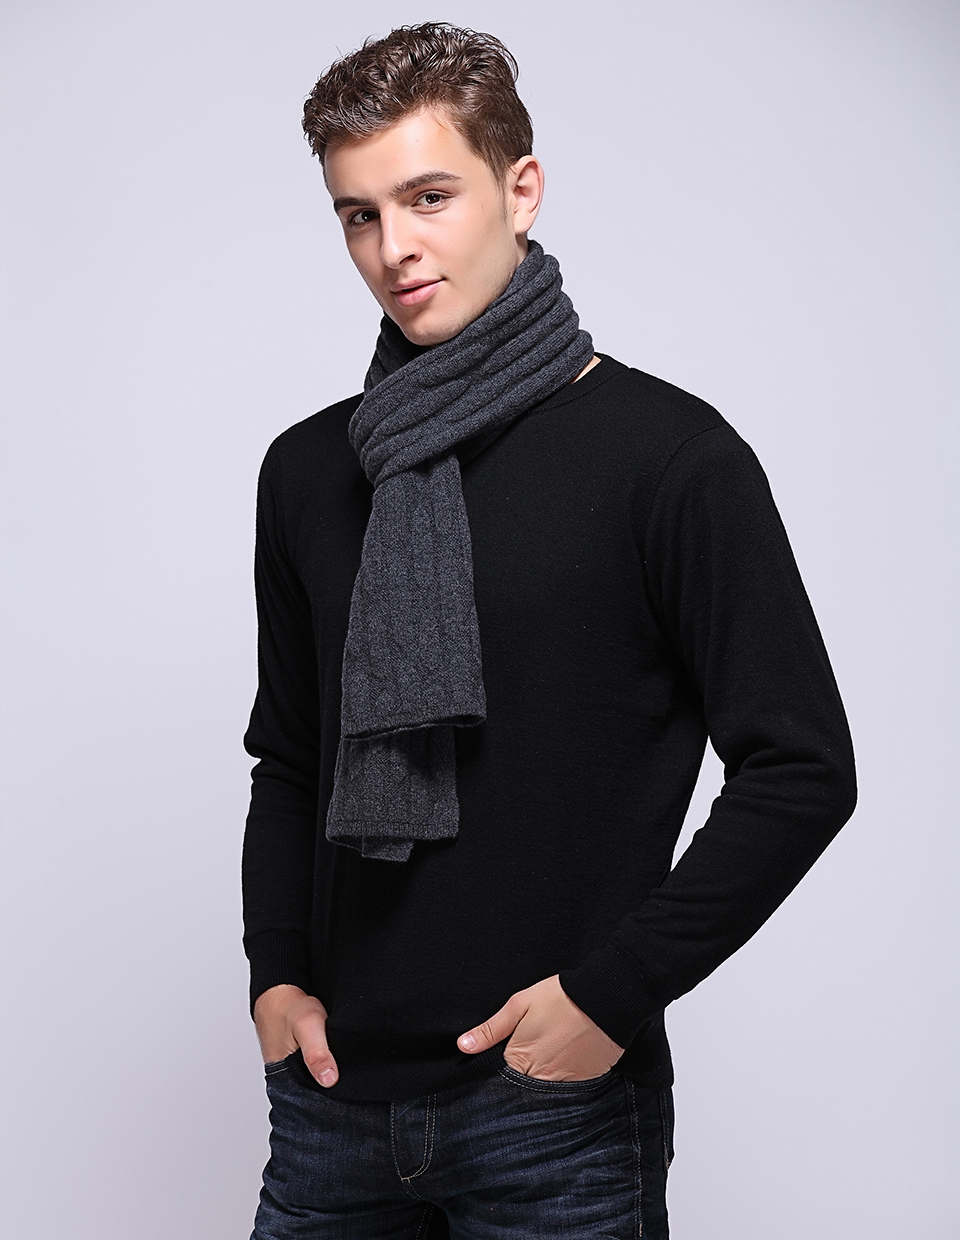 Fashion 2017 Autumn Winter Warm Knitted Luxury Brand 100% Pure Wool Scarf Shawl Neck Wrap Men Scarves Wraps Echarpe Hiver Homme